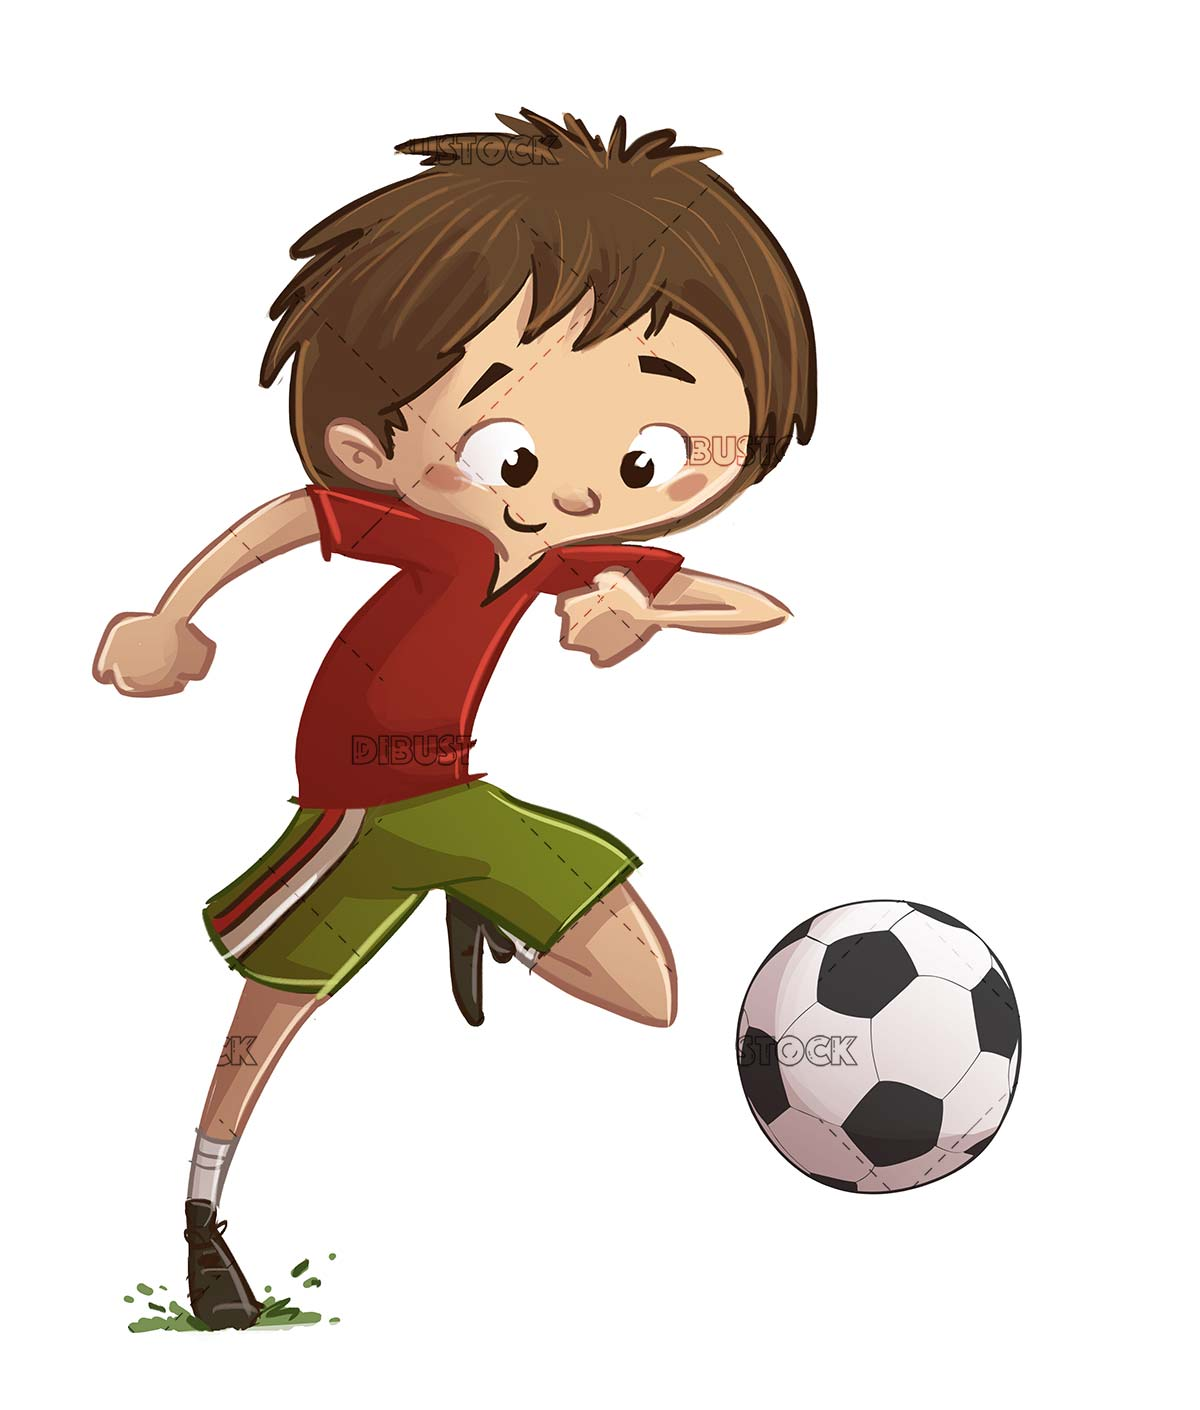 boy running with soccer ball on his feet